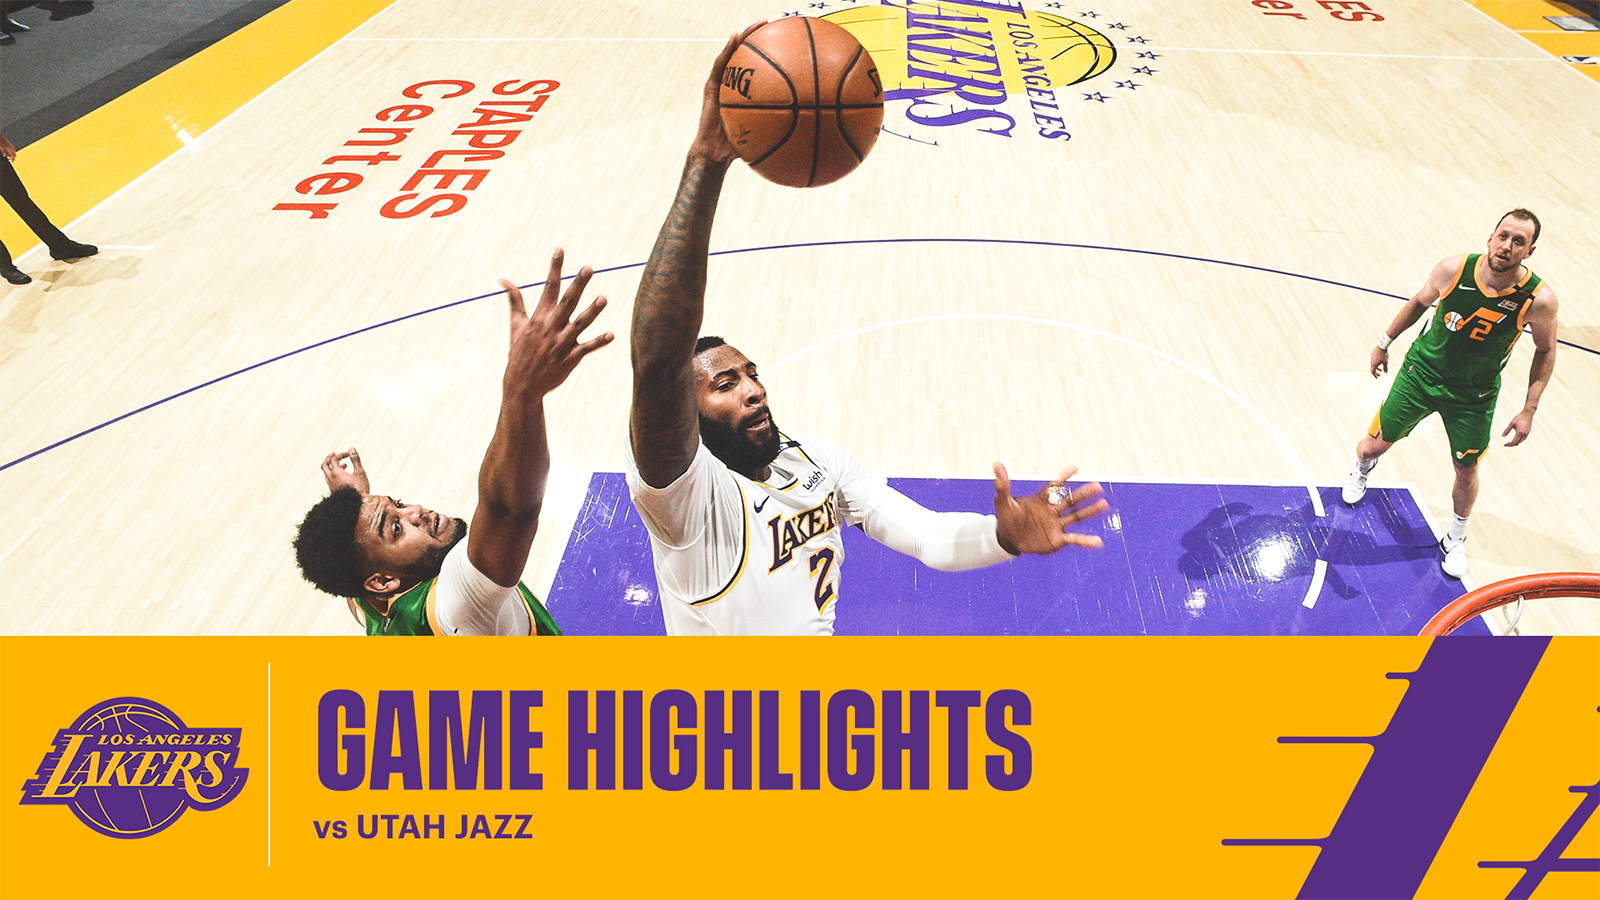 HIGHLIGHTS | Andre Drummond (27 pts, 8 rebs, 3 asts) vs Utah Jazz